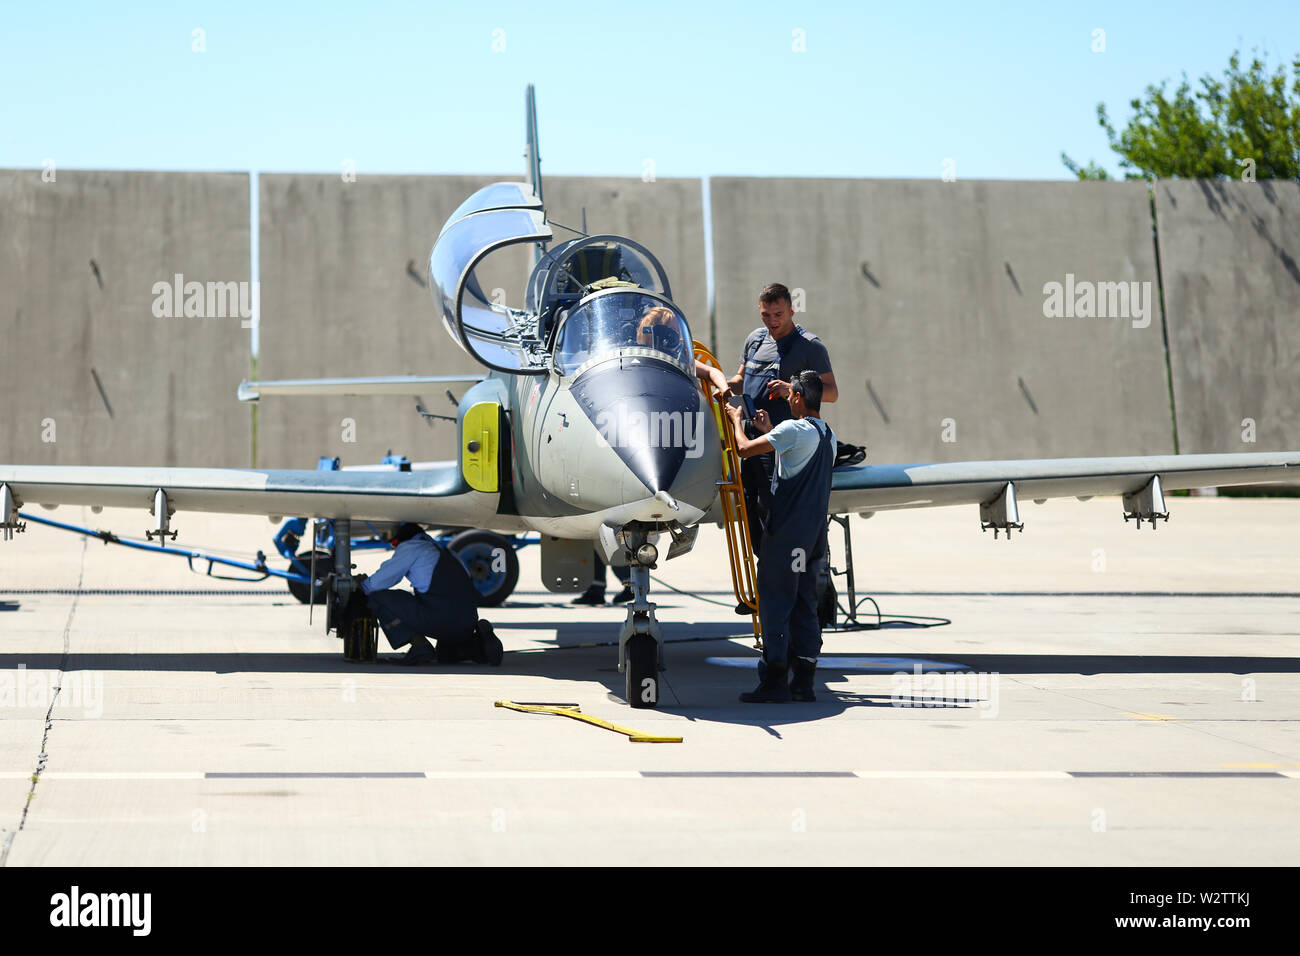 Boboc, Romania - May 22, 2019: Mechanics attend IAR 99 Soim (Hawk) advanced trainer and light attack airplane, used as jet trainer of the Romanian Air Stock Photo